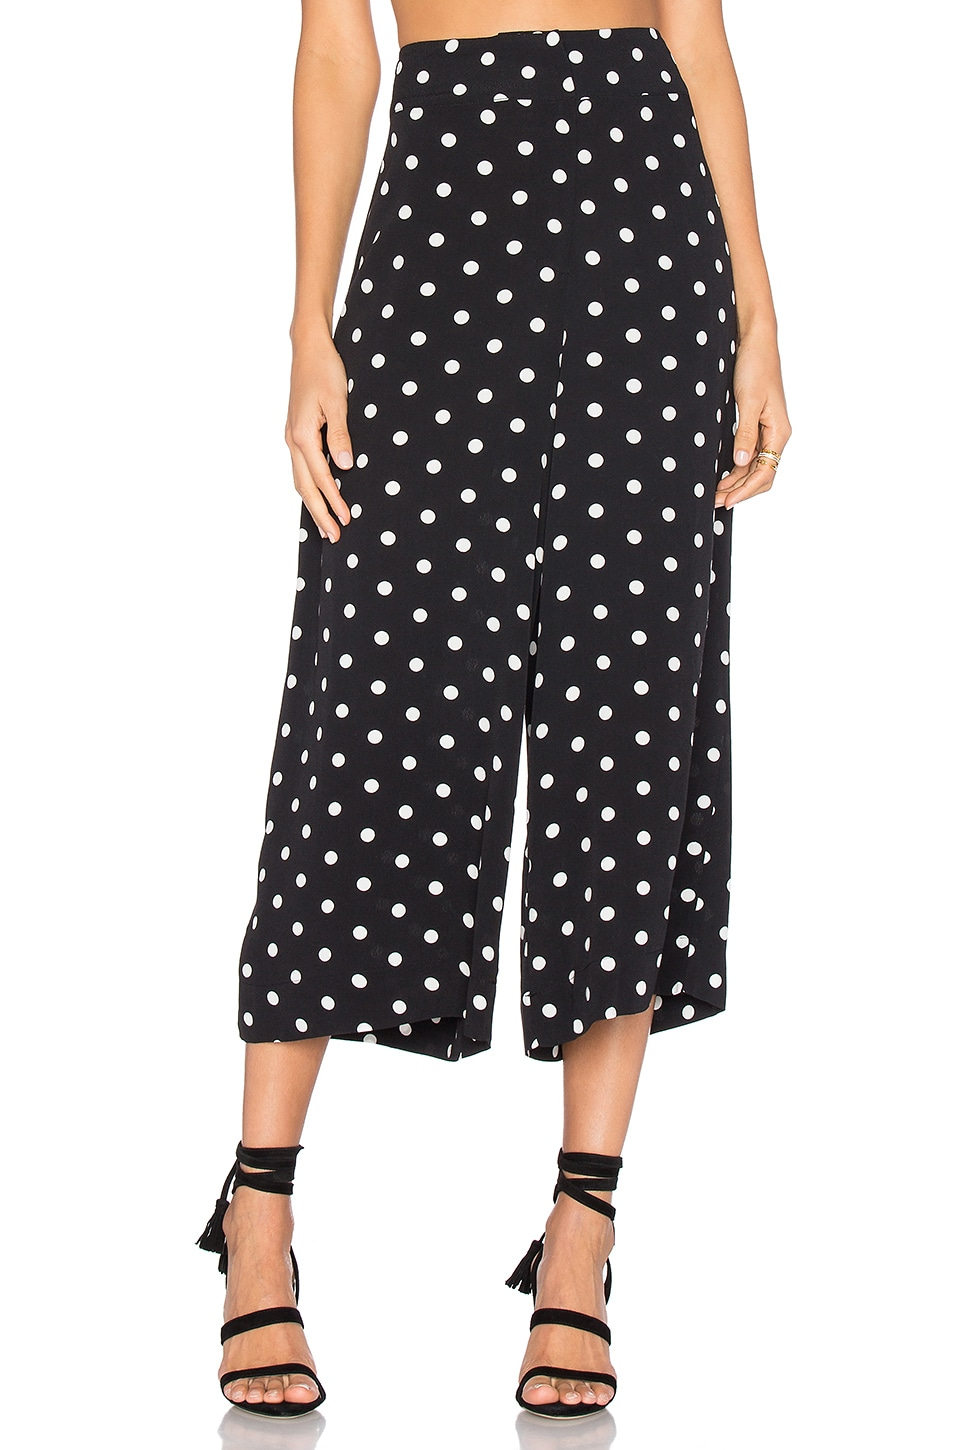 House of Harlow 1960 x REVOLVE Gwen Culotte in Polka Dot